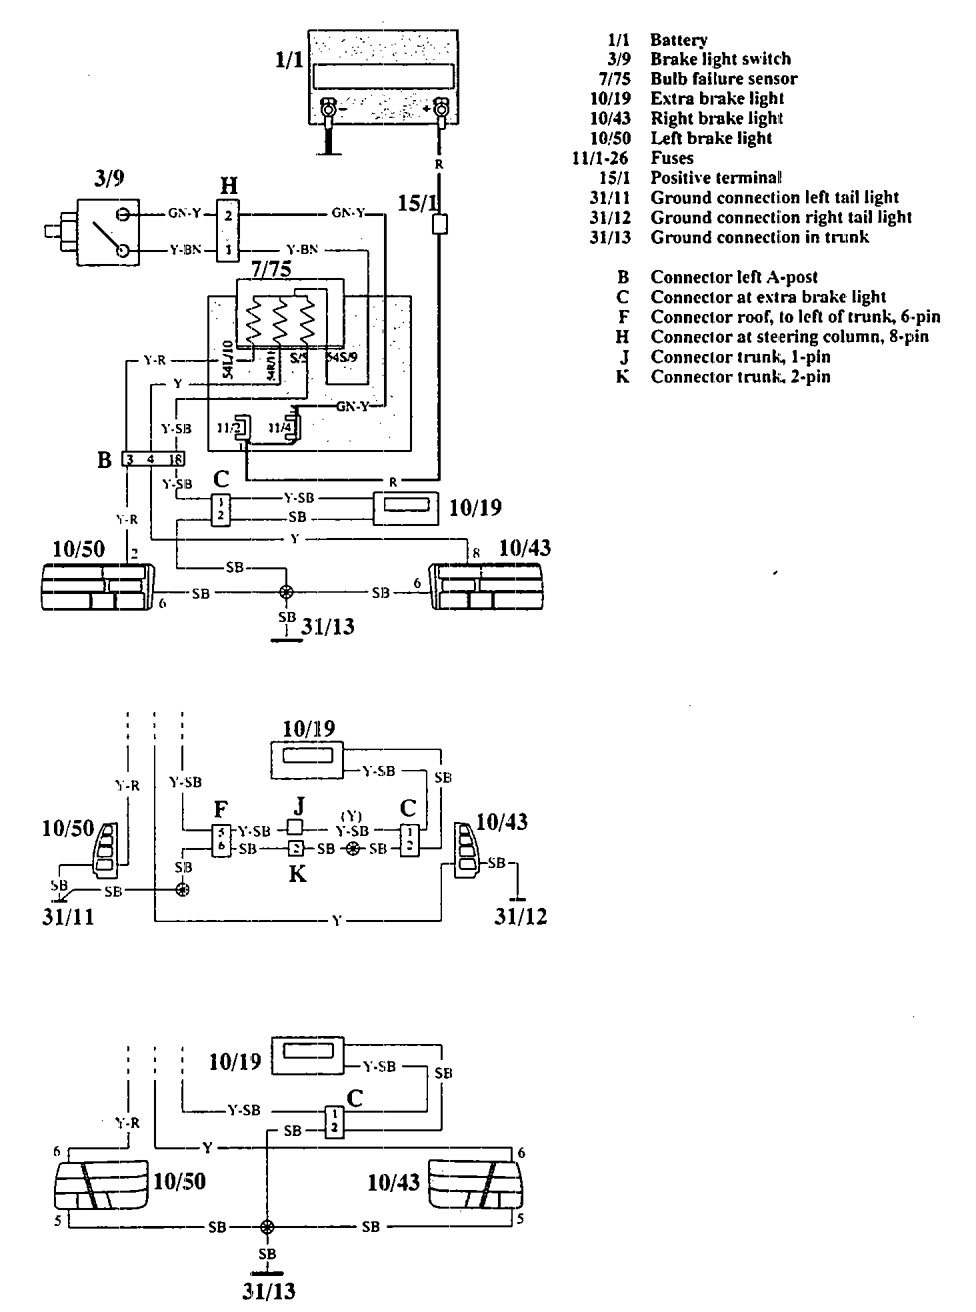 Acura Tl Stereo Wiring Diagram - Wiring Diagram Networks | Volvo Navigation Wiring Diagram |  | Wiring Diagram Networks - blogger